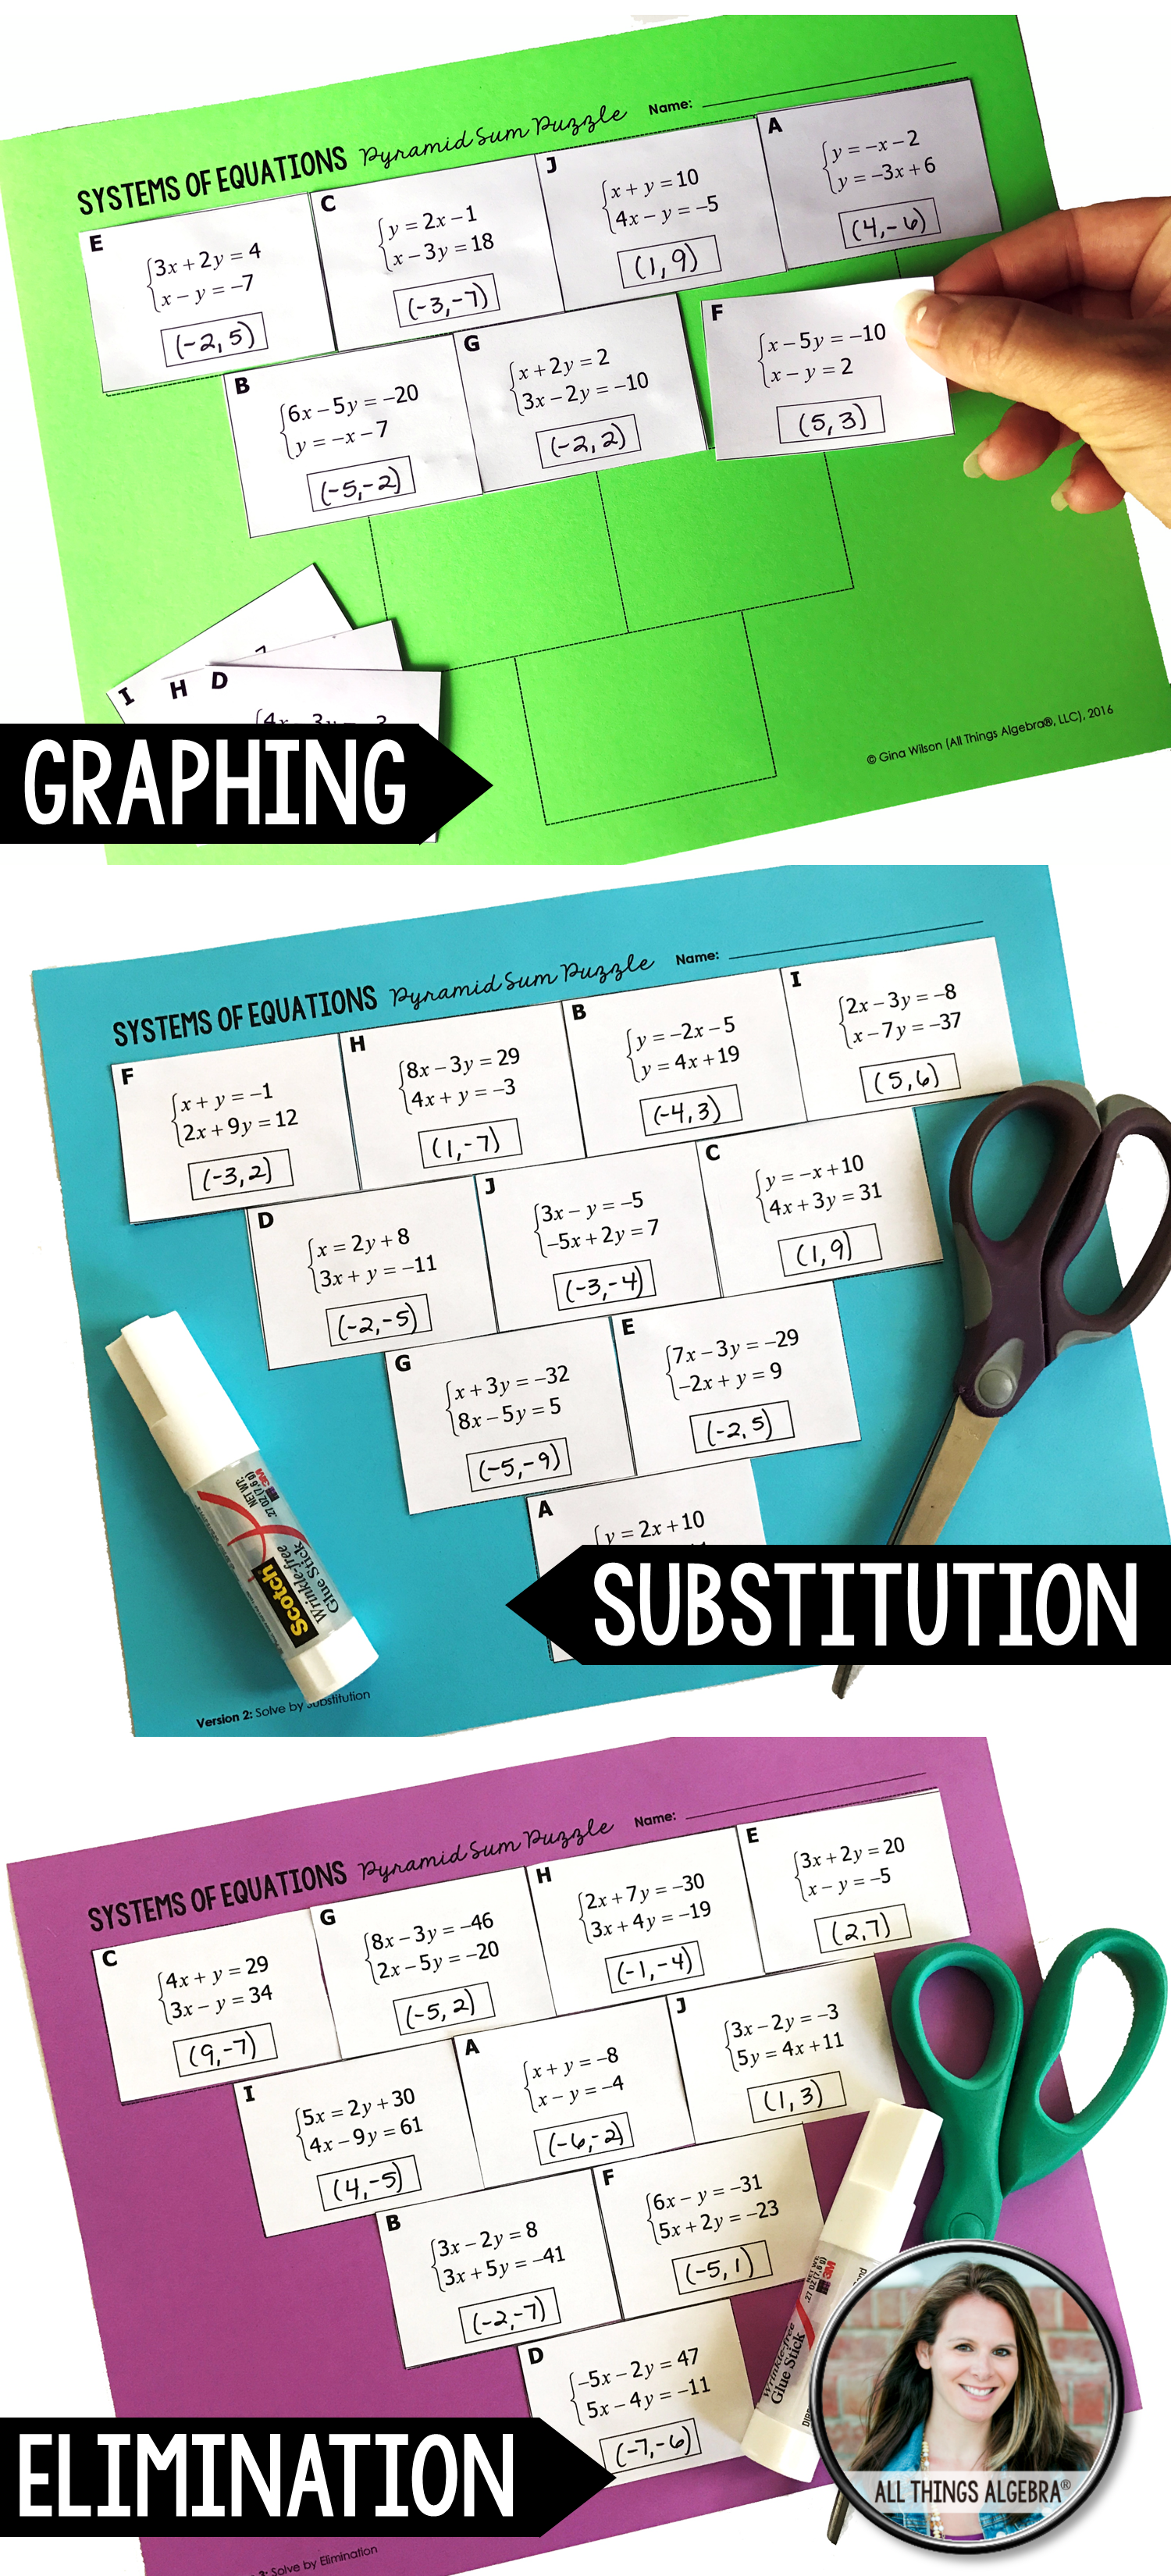 Systems of Equations Pyramid Sum Puzzles (3 puzzles